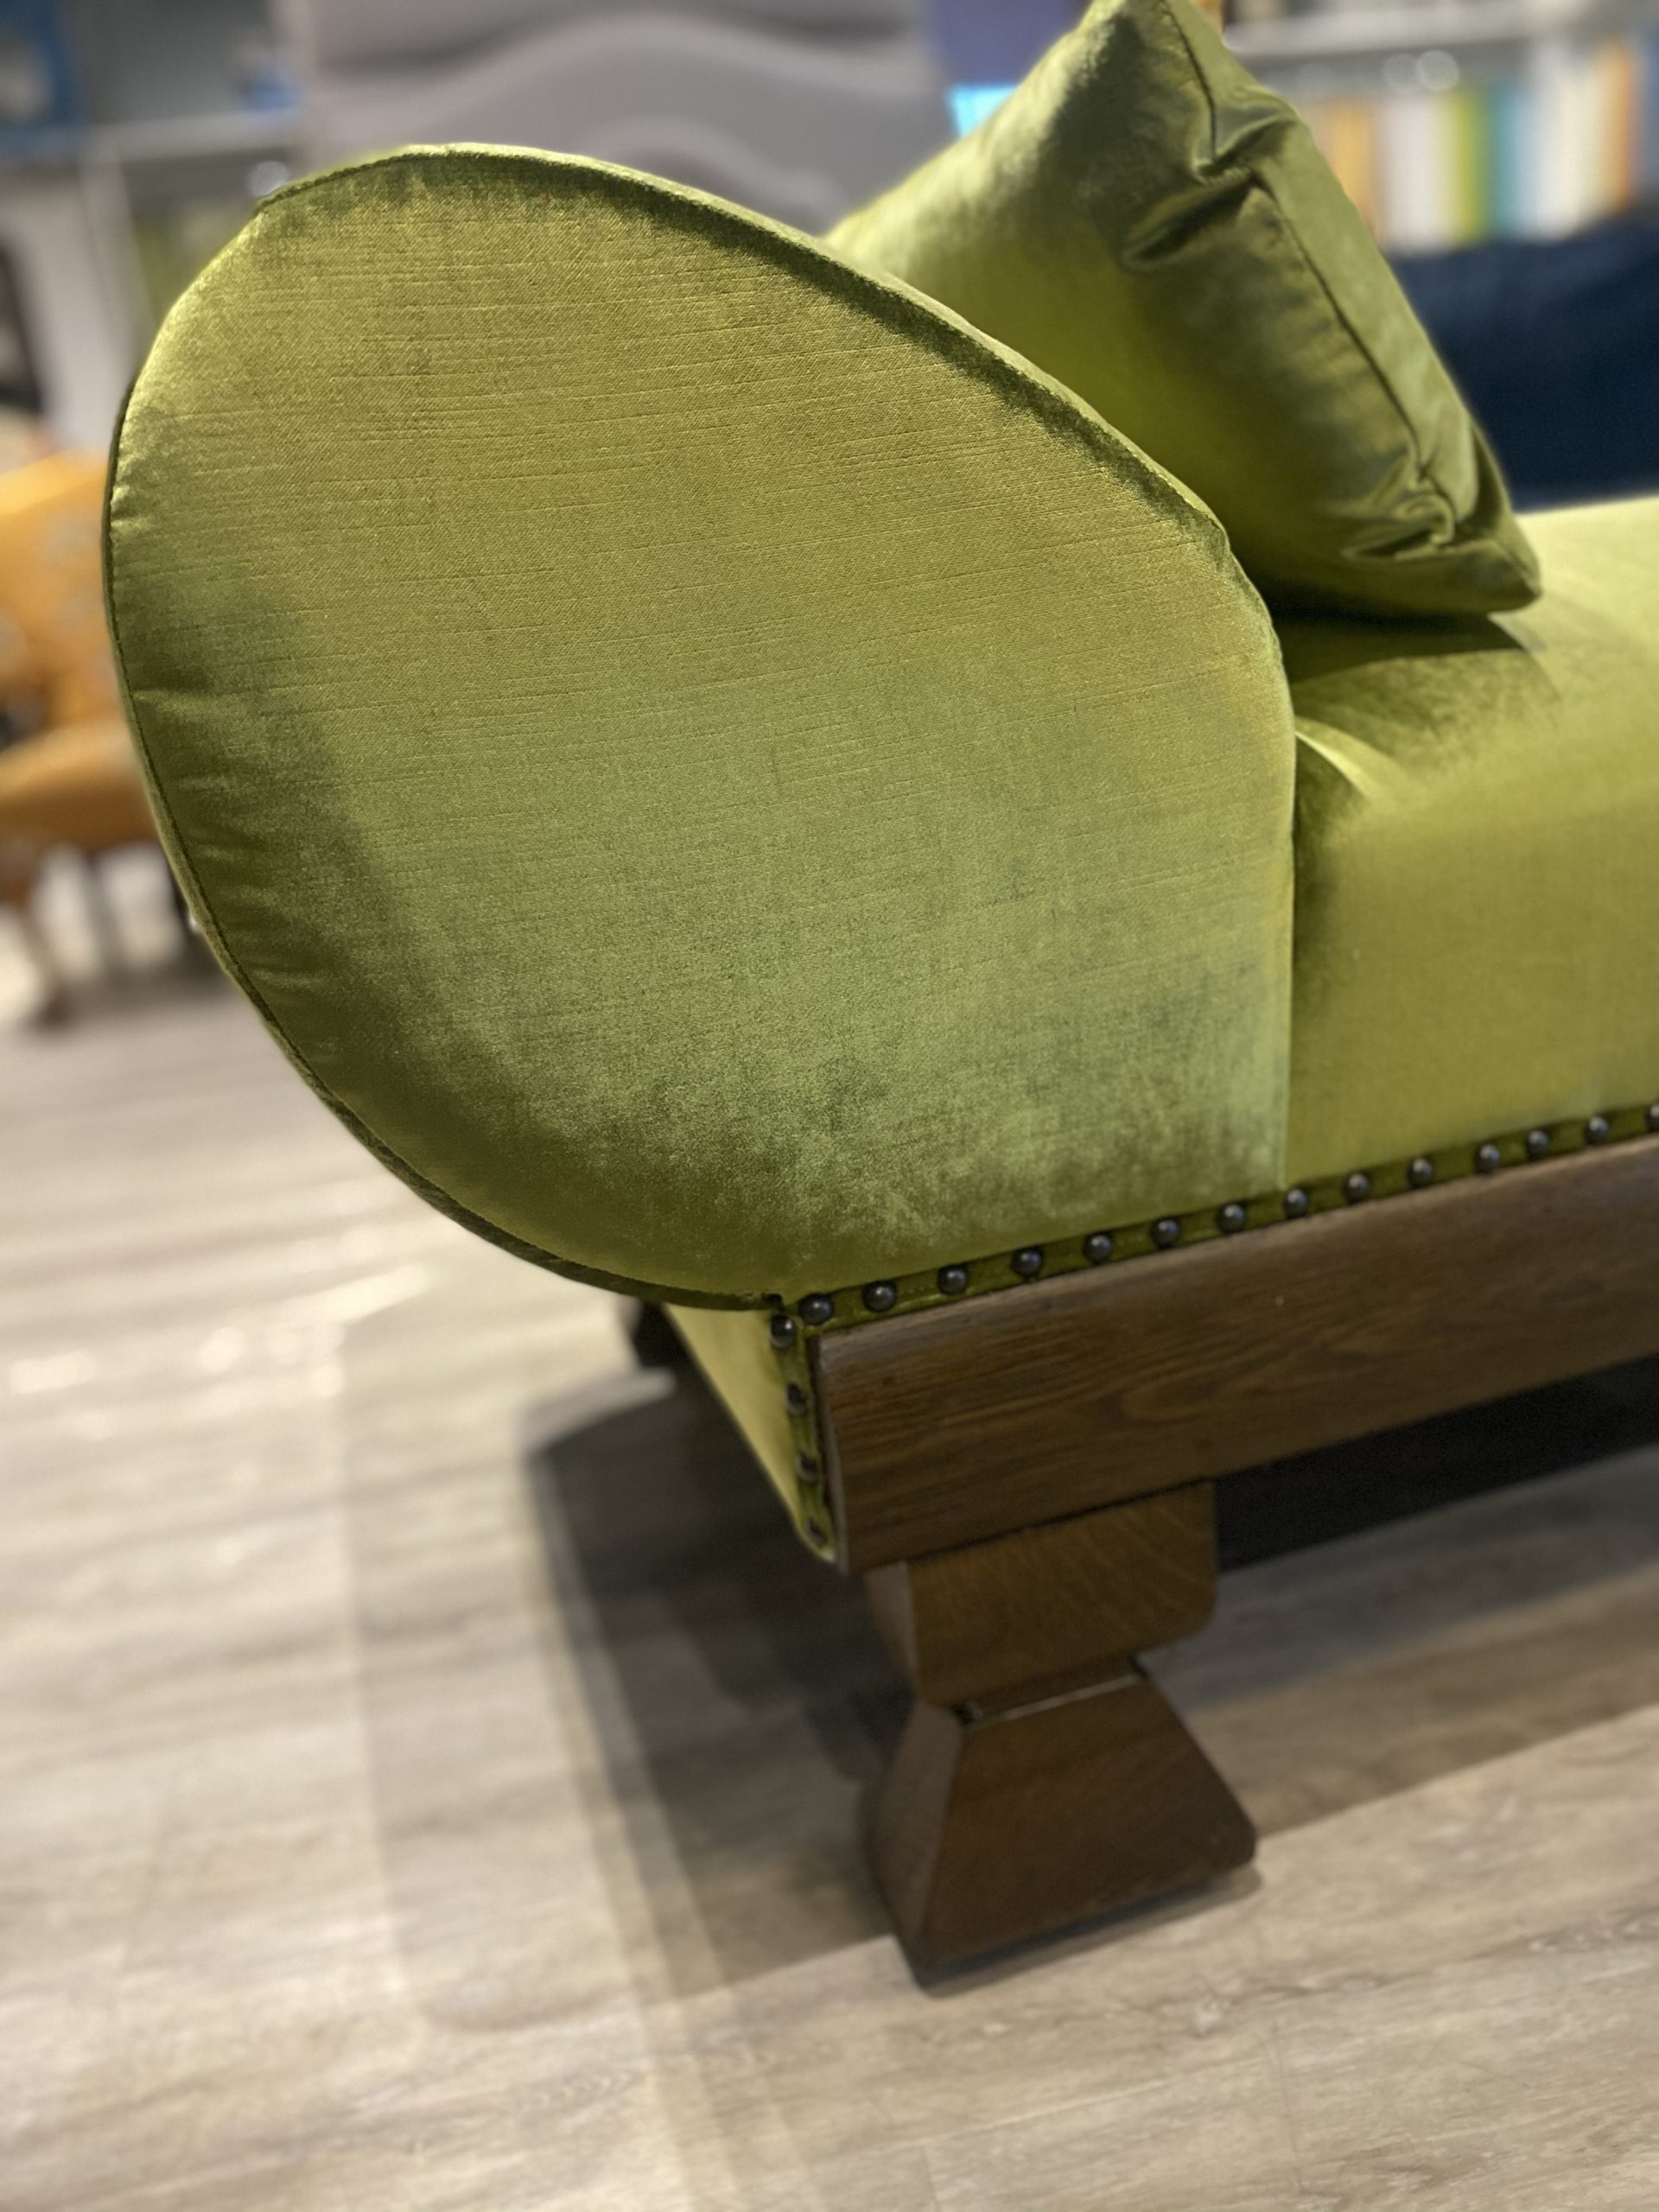 The green chaise auction